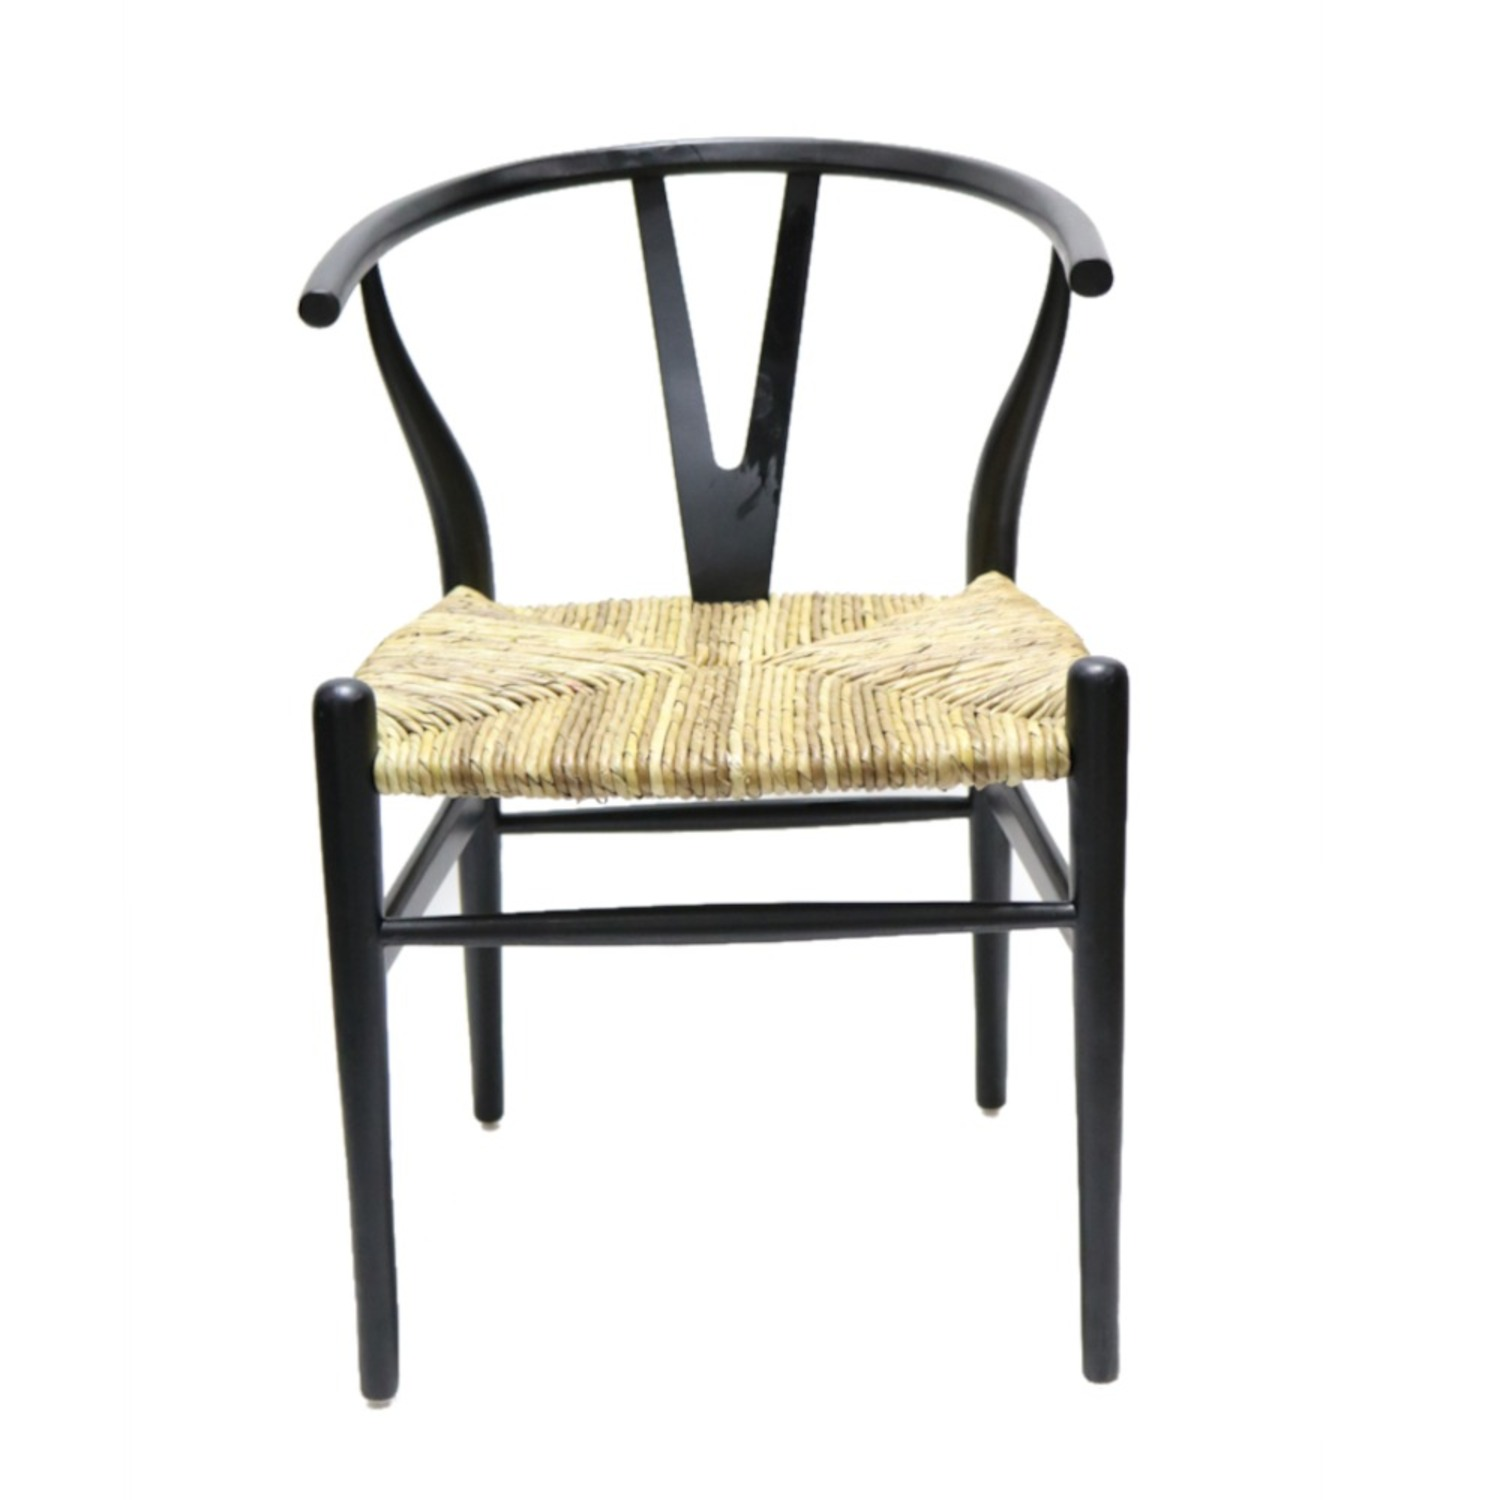 Dining Chair In Black Frame & Natural Hemp Seat - image-1